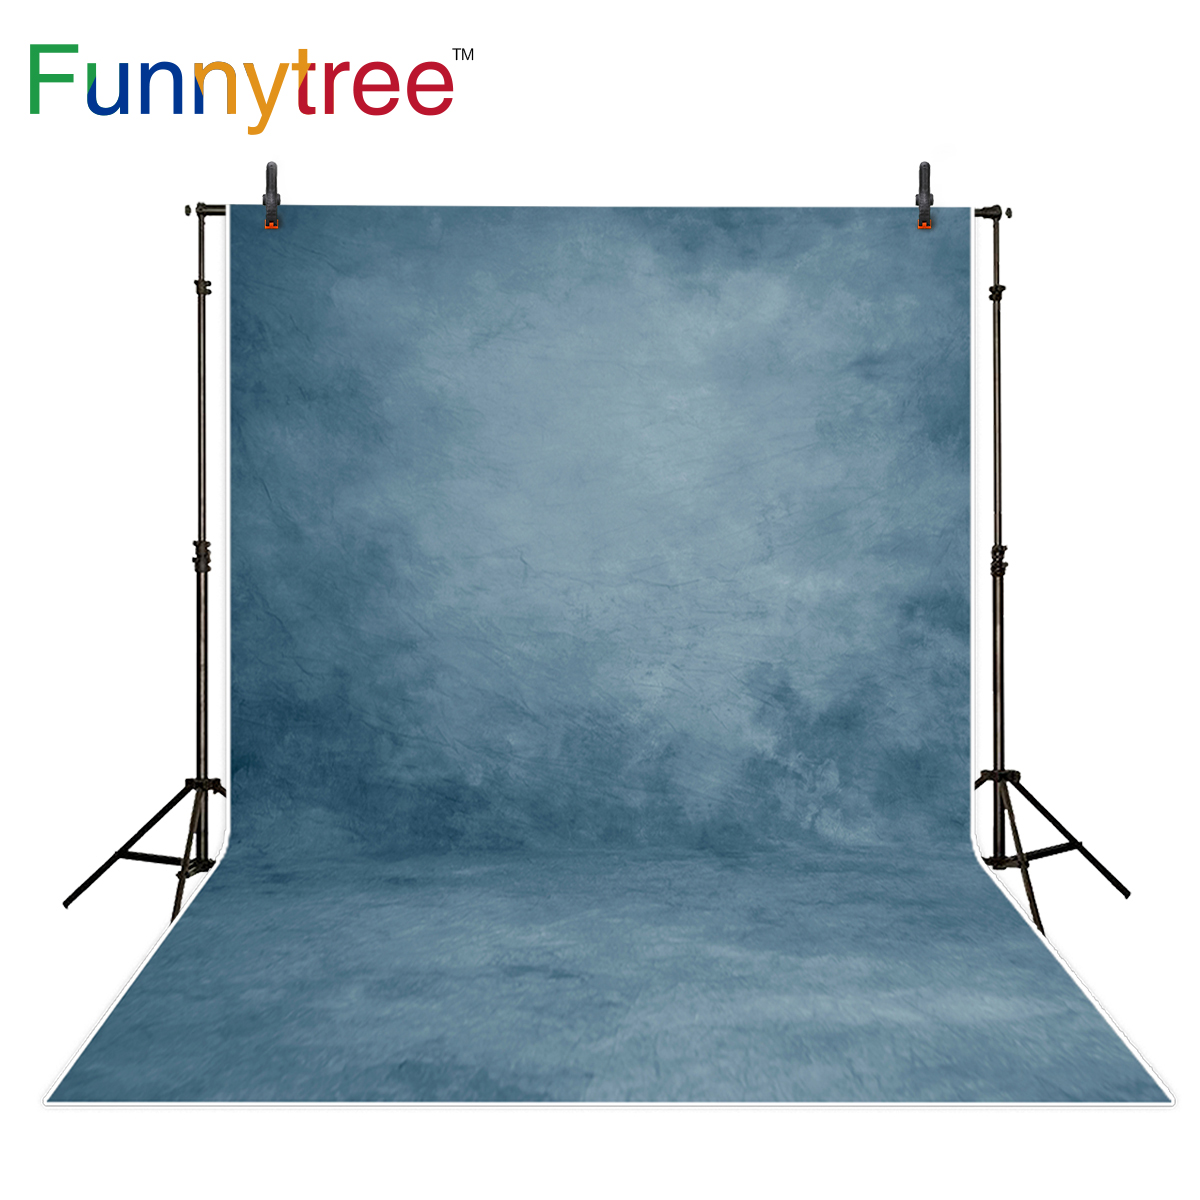 Funnytree pure color photography backdrop portrait shooting computer print background photo studio photobooth